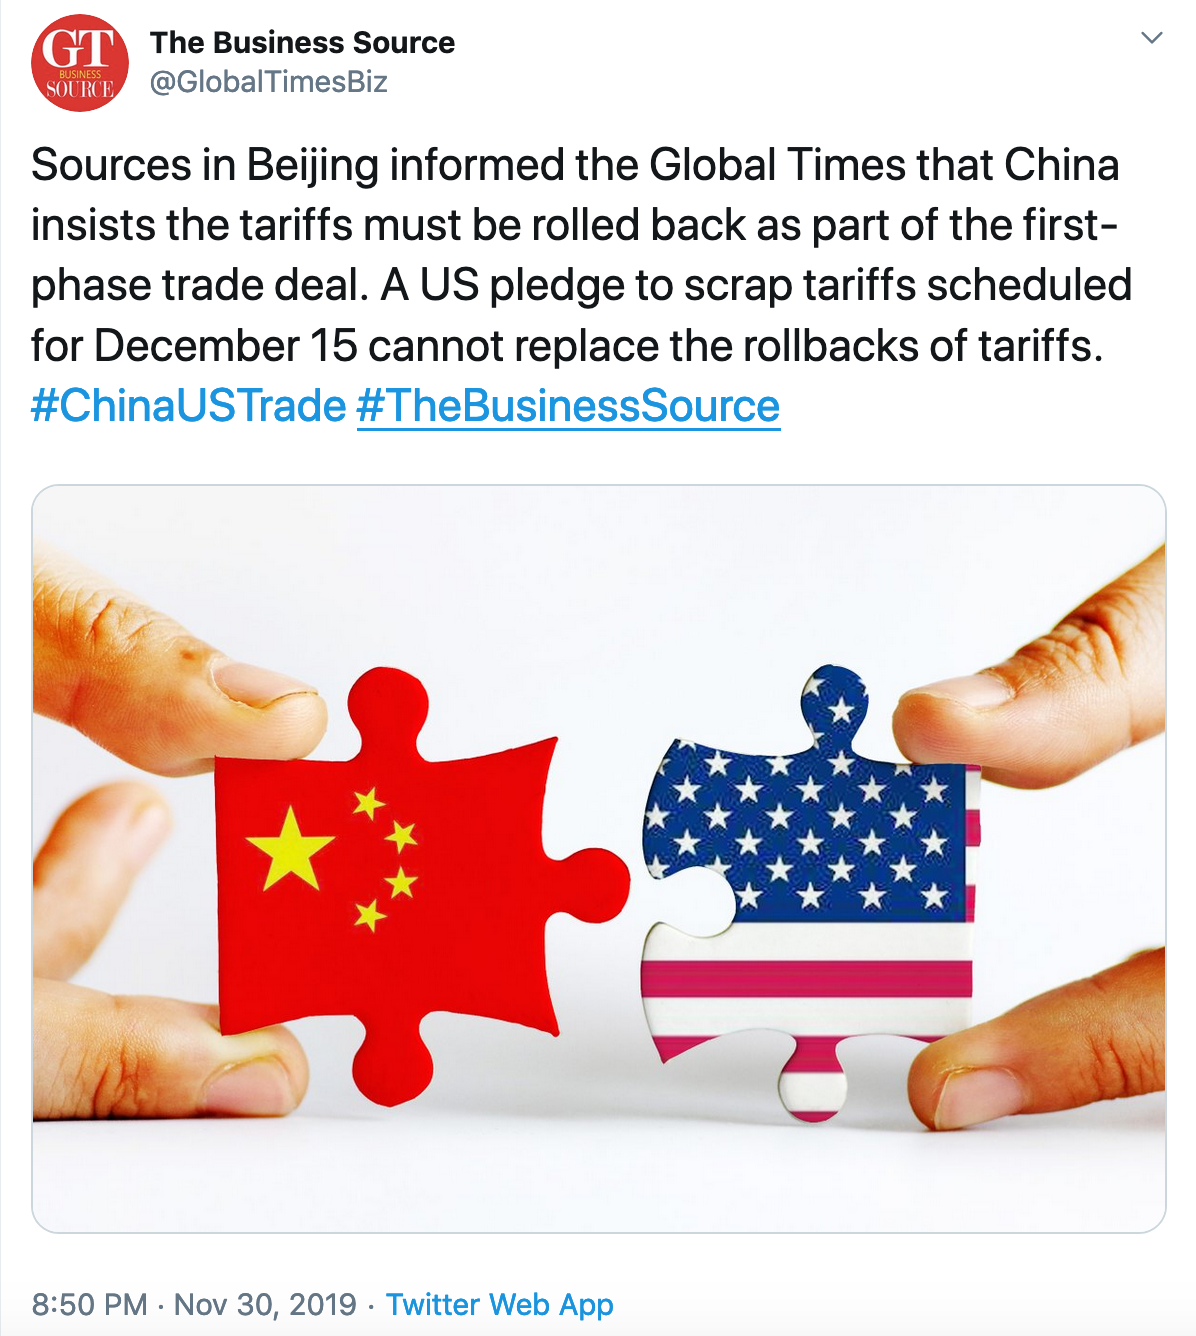 A tweet from China's Global Times that says China will require the U.S. to remove previous tariffs before striking a trade deal.